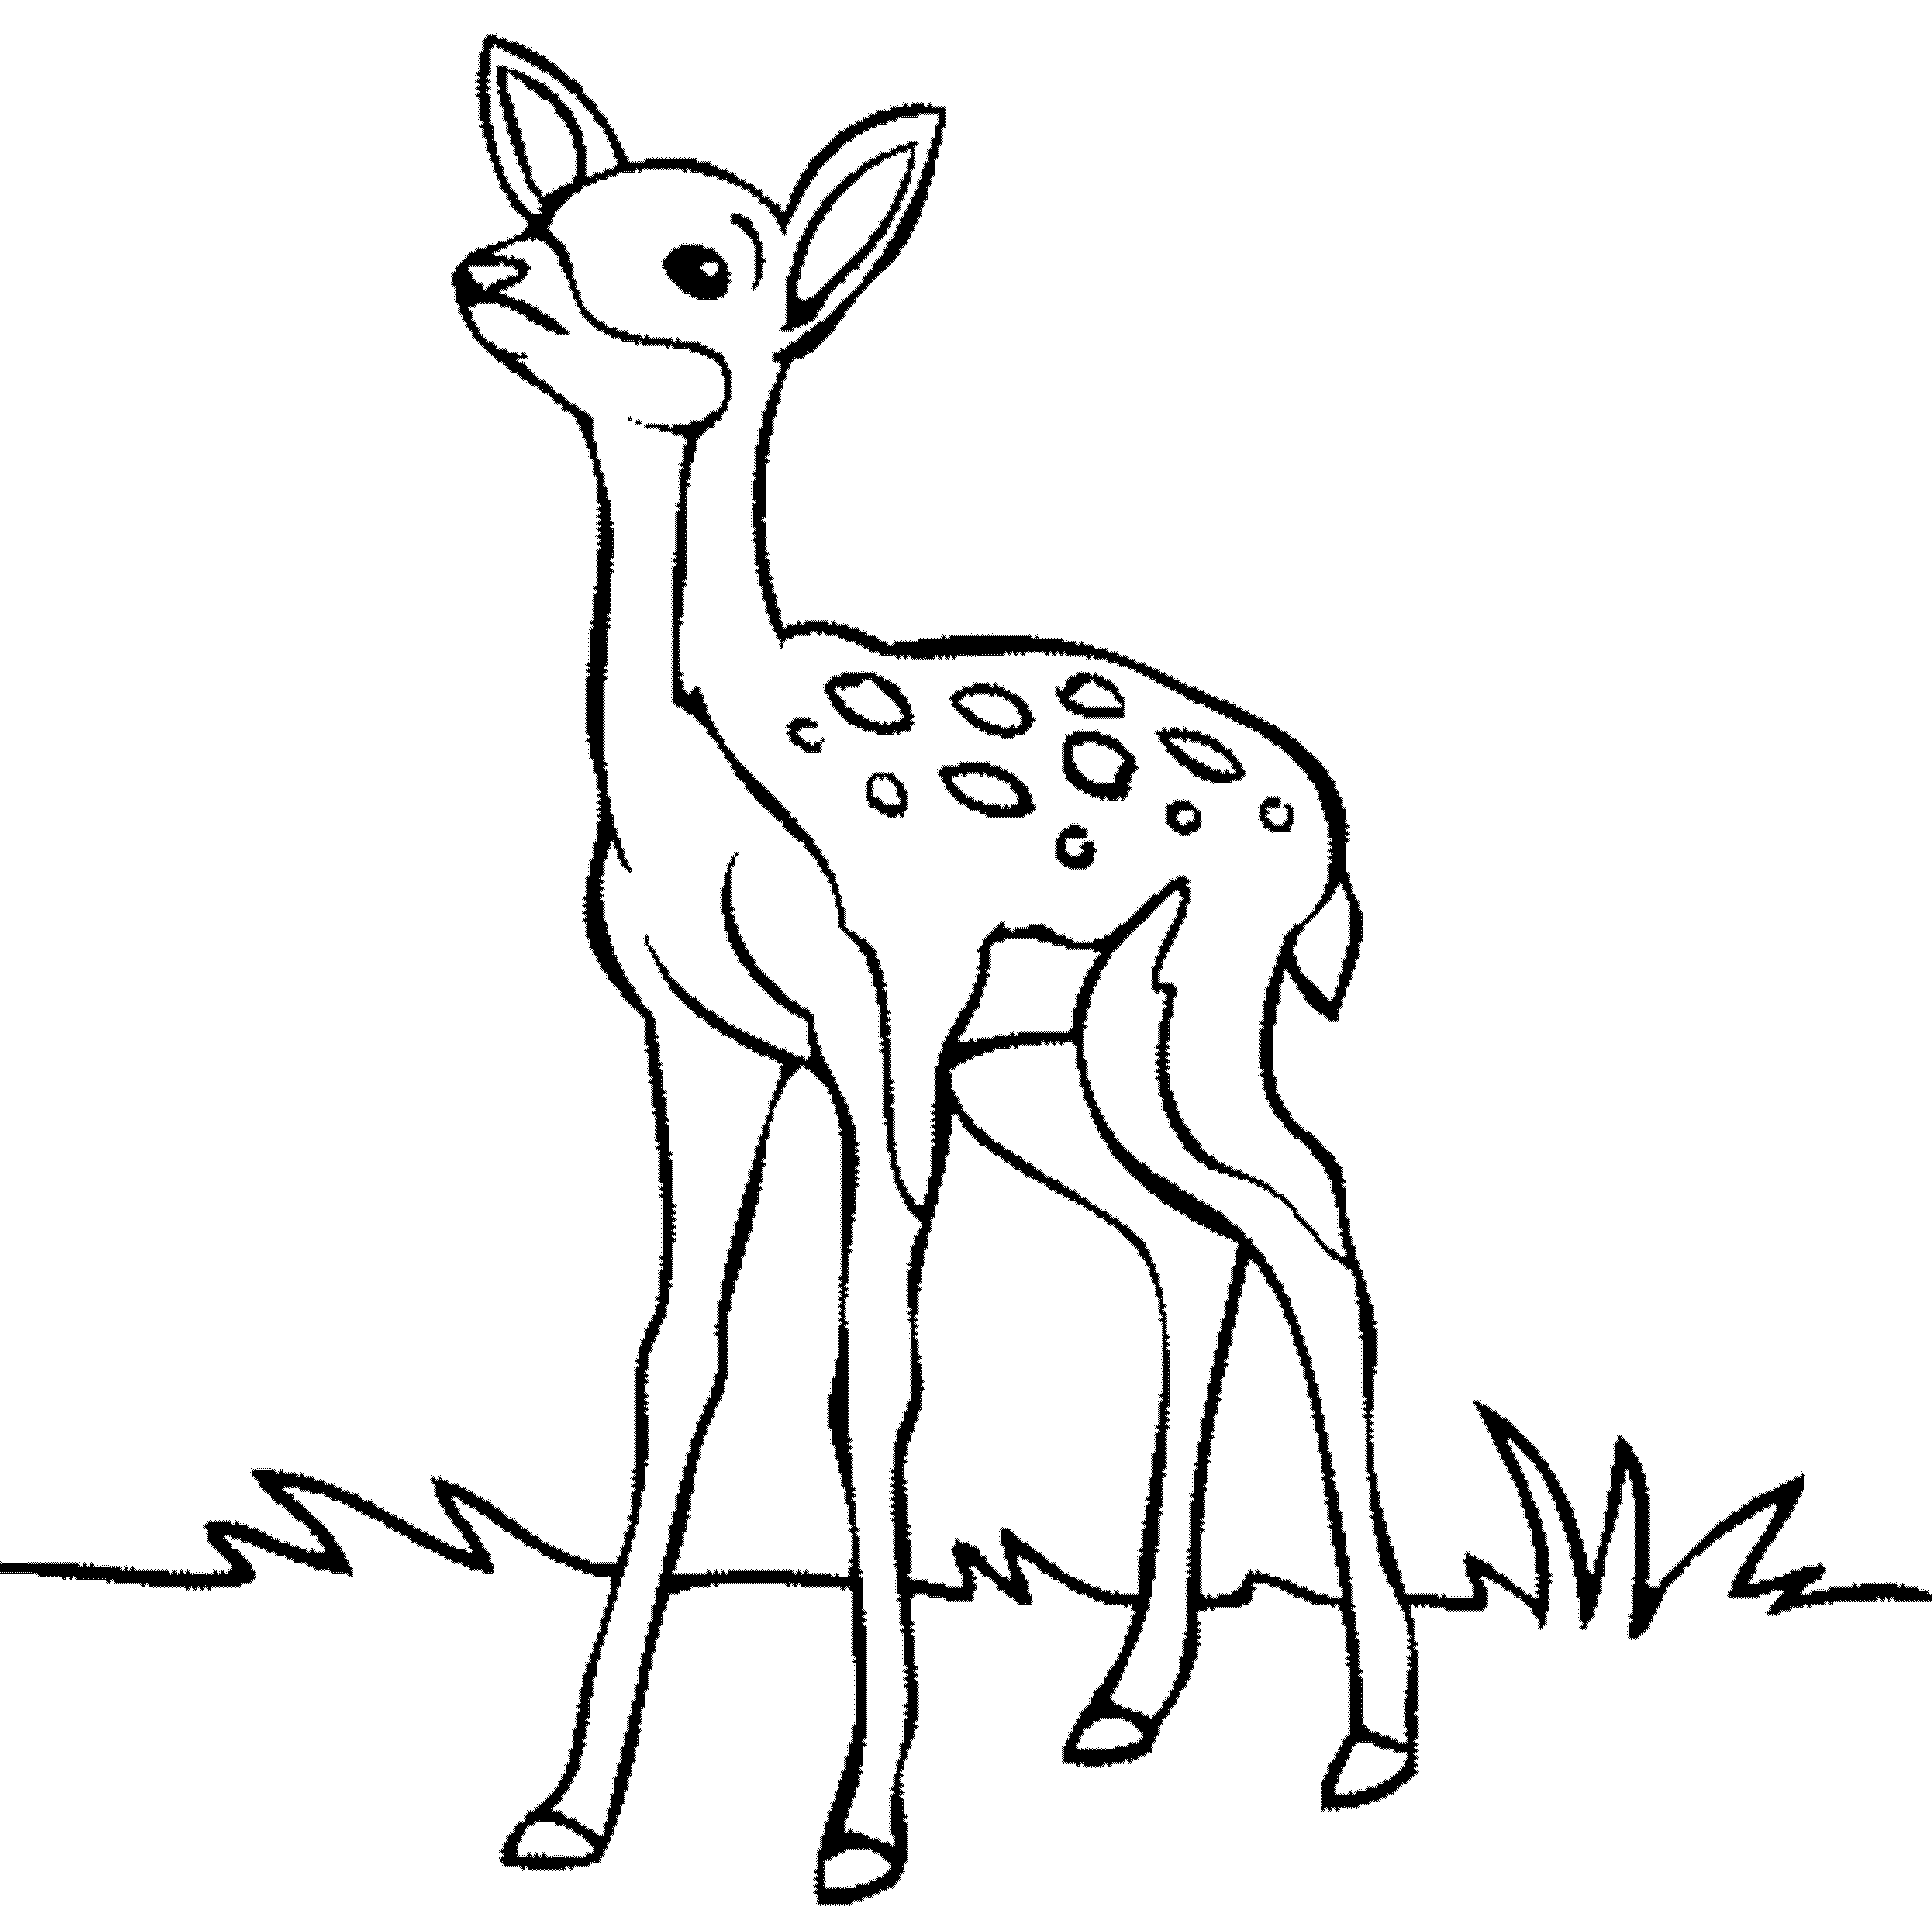 Deer black and white clipart 2 » Clipart Portal.